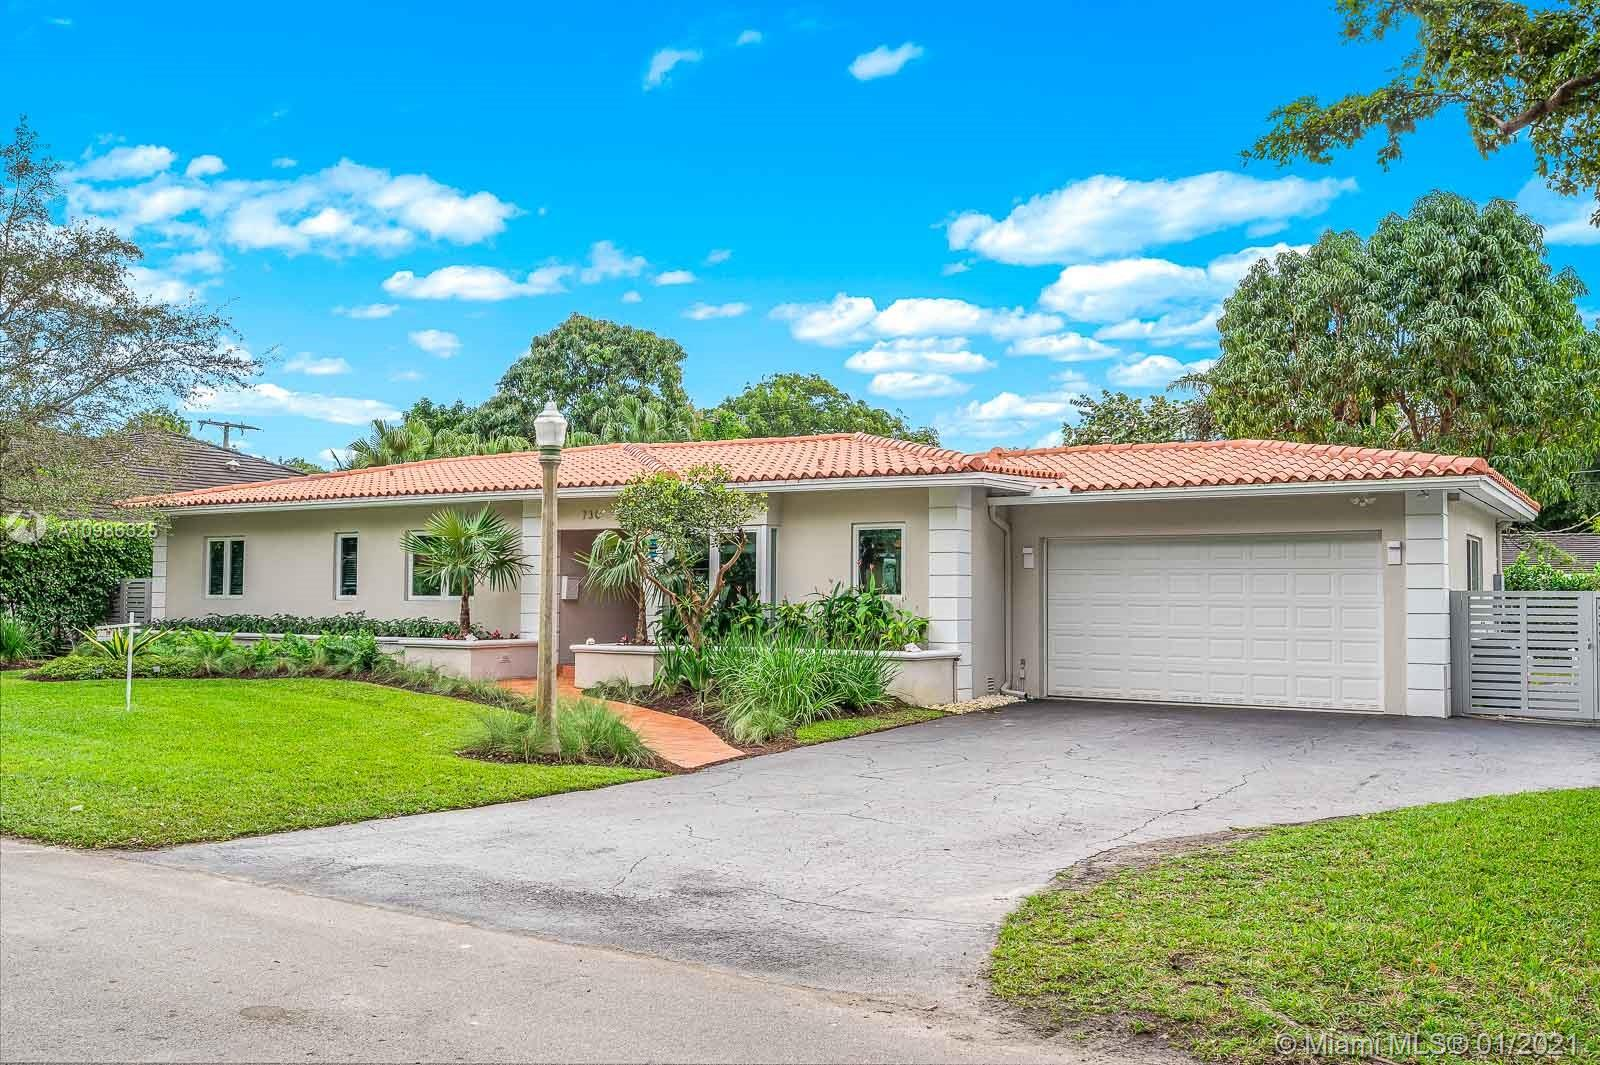 "Incredible 3br 3ba Gables remodeled in 2014 and located in sought after ""Platinum Triangle"". Gas and electric appliances included. Fabulous Sunset Elementary nearby offering a language magnet program for Spanish, French and German, considered the best program in all Miami-Dade County. Great family friendly neighborhood, just minutes from S Miami, Red Road Mall, restaurants, Downtown Coral Gables, Coconut Grove and Miami. This home has it all and is move-in ready! Make sure to pick up complete feature list when visiting showing the many replaced items including security cameras, A/C system and much more! MASKS ARE REQUIRED & BOOTIES AT FRONT DOOR."